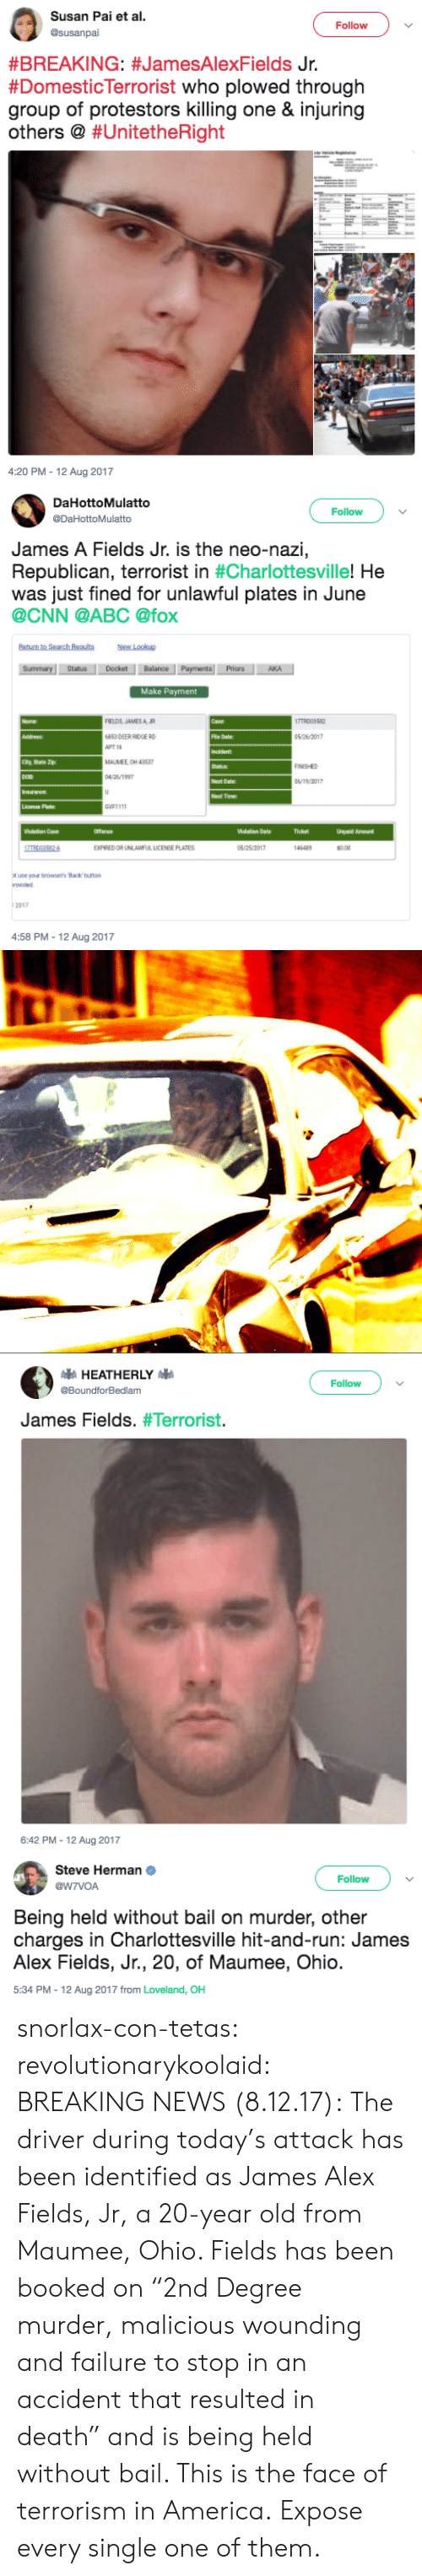 "Abc, America, and cnn.com: Susan Pai et al  Follow  #BREAKING: #JamesAlexFields Jr.  #Domesticlerrorist who plowed through  group of protestors killing one & injuring  others @ #Un.tetheRight  4:20 PM-12 Aug 2017   DaHottoMulatto  @DaHottoMulatto  Follow  James A Fields Jr. is the neo-nazi,  Republican, terrorist in #Charlottesville,He  was just fined for unlawful plates in June  @CNN @ABC @fox  New Lookup  StatusDocket Balance  Priors  Make Payment  FIELDS JAMESA R  6853 DEER RIDGE RD  АРТН  MAUMEE OH 4353  5 26/2017  NISHED  Next Date  Next Time  GVF1111  Ticket  Unpeid Amount  EXPIREDOR UNLAWFUIL LICENSE PLATES  0.00  ot use your browsers Back button  2017  4:58 PM-12 Aug 2017   Follow  @BoundforBedlam  James Fields. #Terrorist·  6:42 PM-12 Aug 2017   Steve Herman  @W7VOA  Follow  Being held without bail on murder, other  charges in Charlottesville hit-and-run: James  Alex Fields, Jr., 20, of Maumee, Ohio  5:34 PM-12 Aug 2017 from Loveland, OH snorlax-con-tetas: revolutionarykoolaid:   BREAKING NEWS (8.12.17): The driver during today's attack has been identified as James Alex Fields, Jr, a 20-year old from Maumee, Ohio. Fields has been booked on ""2nd Degree murder, malicious wounding and failure to stop in an accident that resulted in death"" and is being held without bail.  This is the face of terrorism in America.   Expose every single one of them."